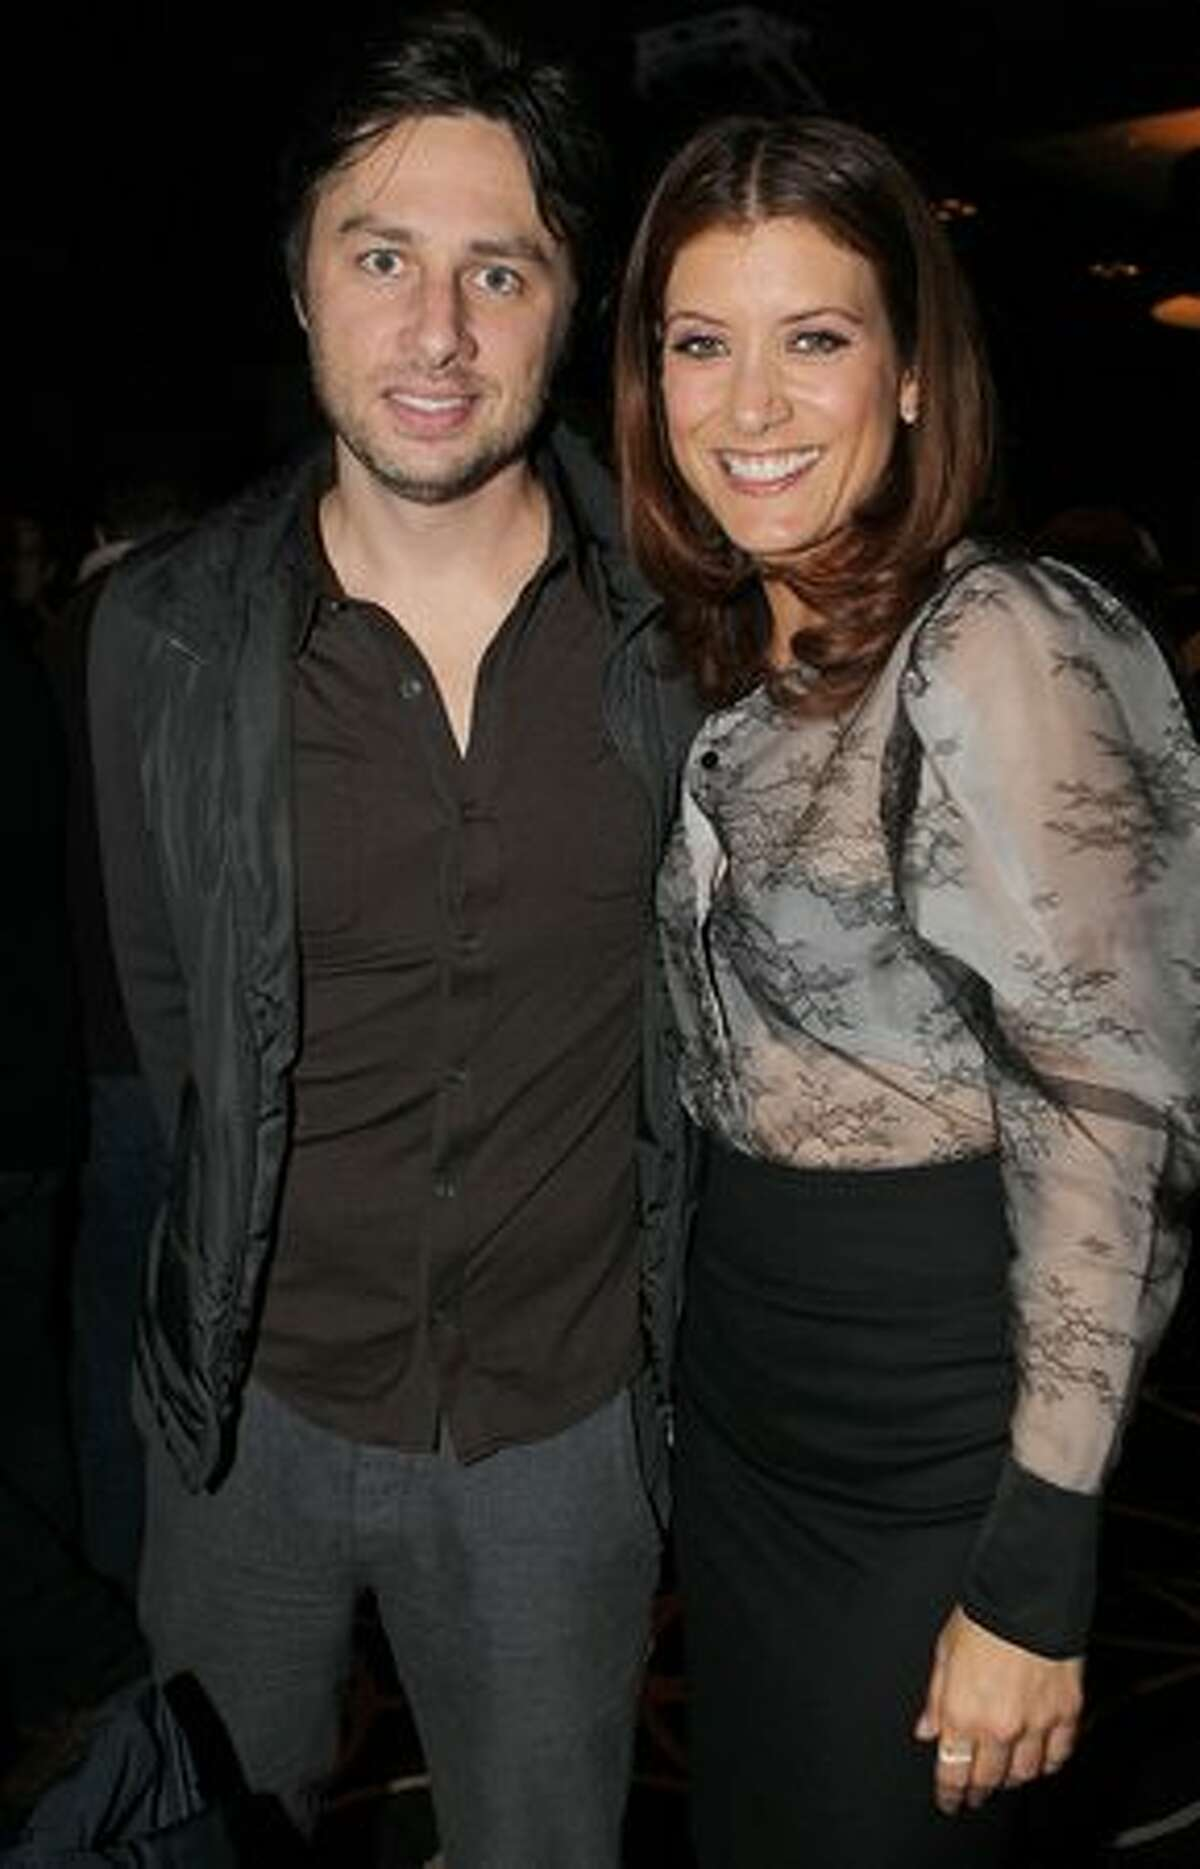 Actors Zach Braff and Kate Walsh attend the 2011 Tribeca Film Festival Kick-Off party at the W Hollywood in Hollywood, California.